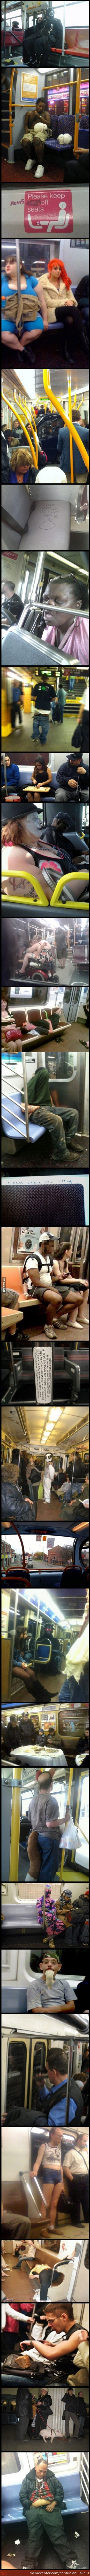 Public Transport Never Gets Boring